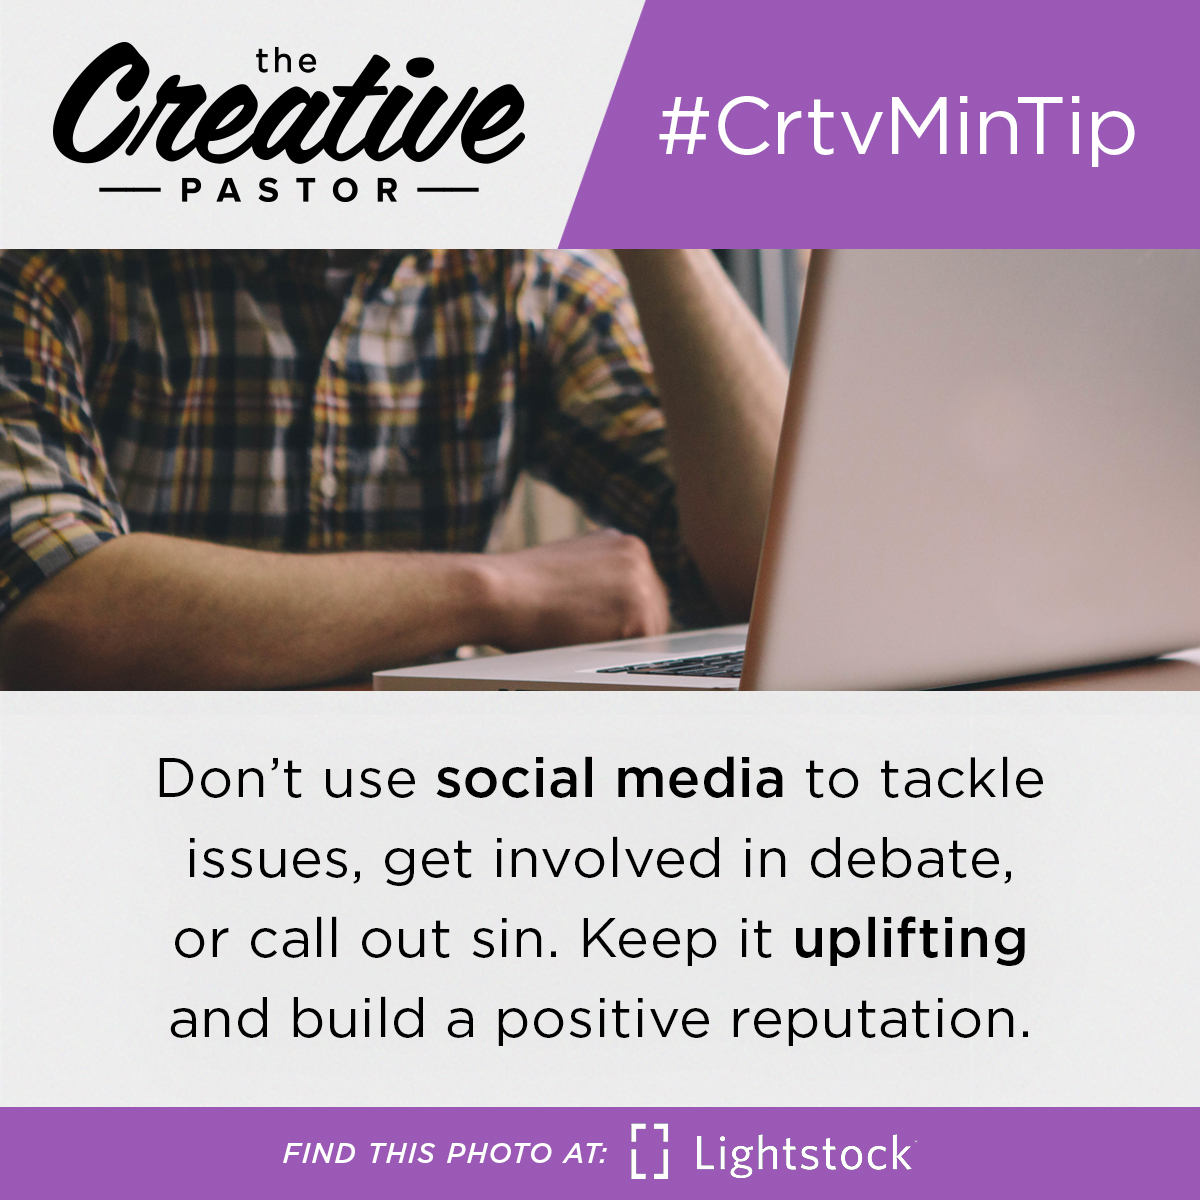 Don't use social media to tackle issues, get involved in debate, or call out sin. Keep it uplifting and build a positive reputation.